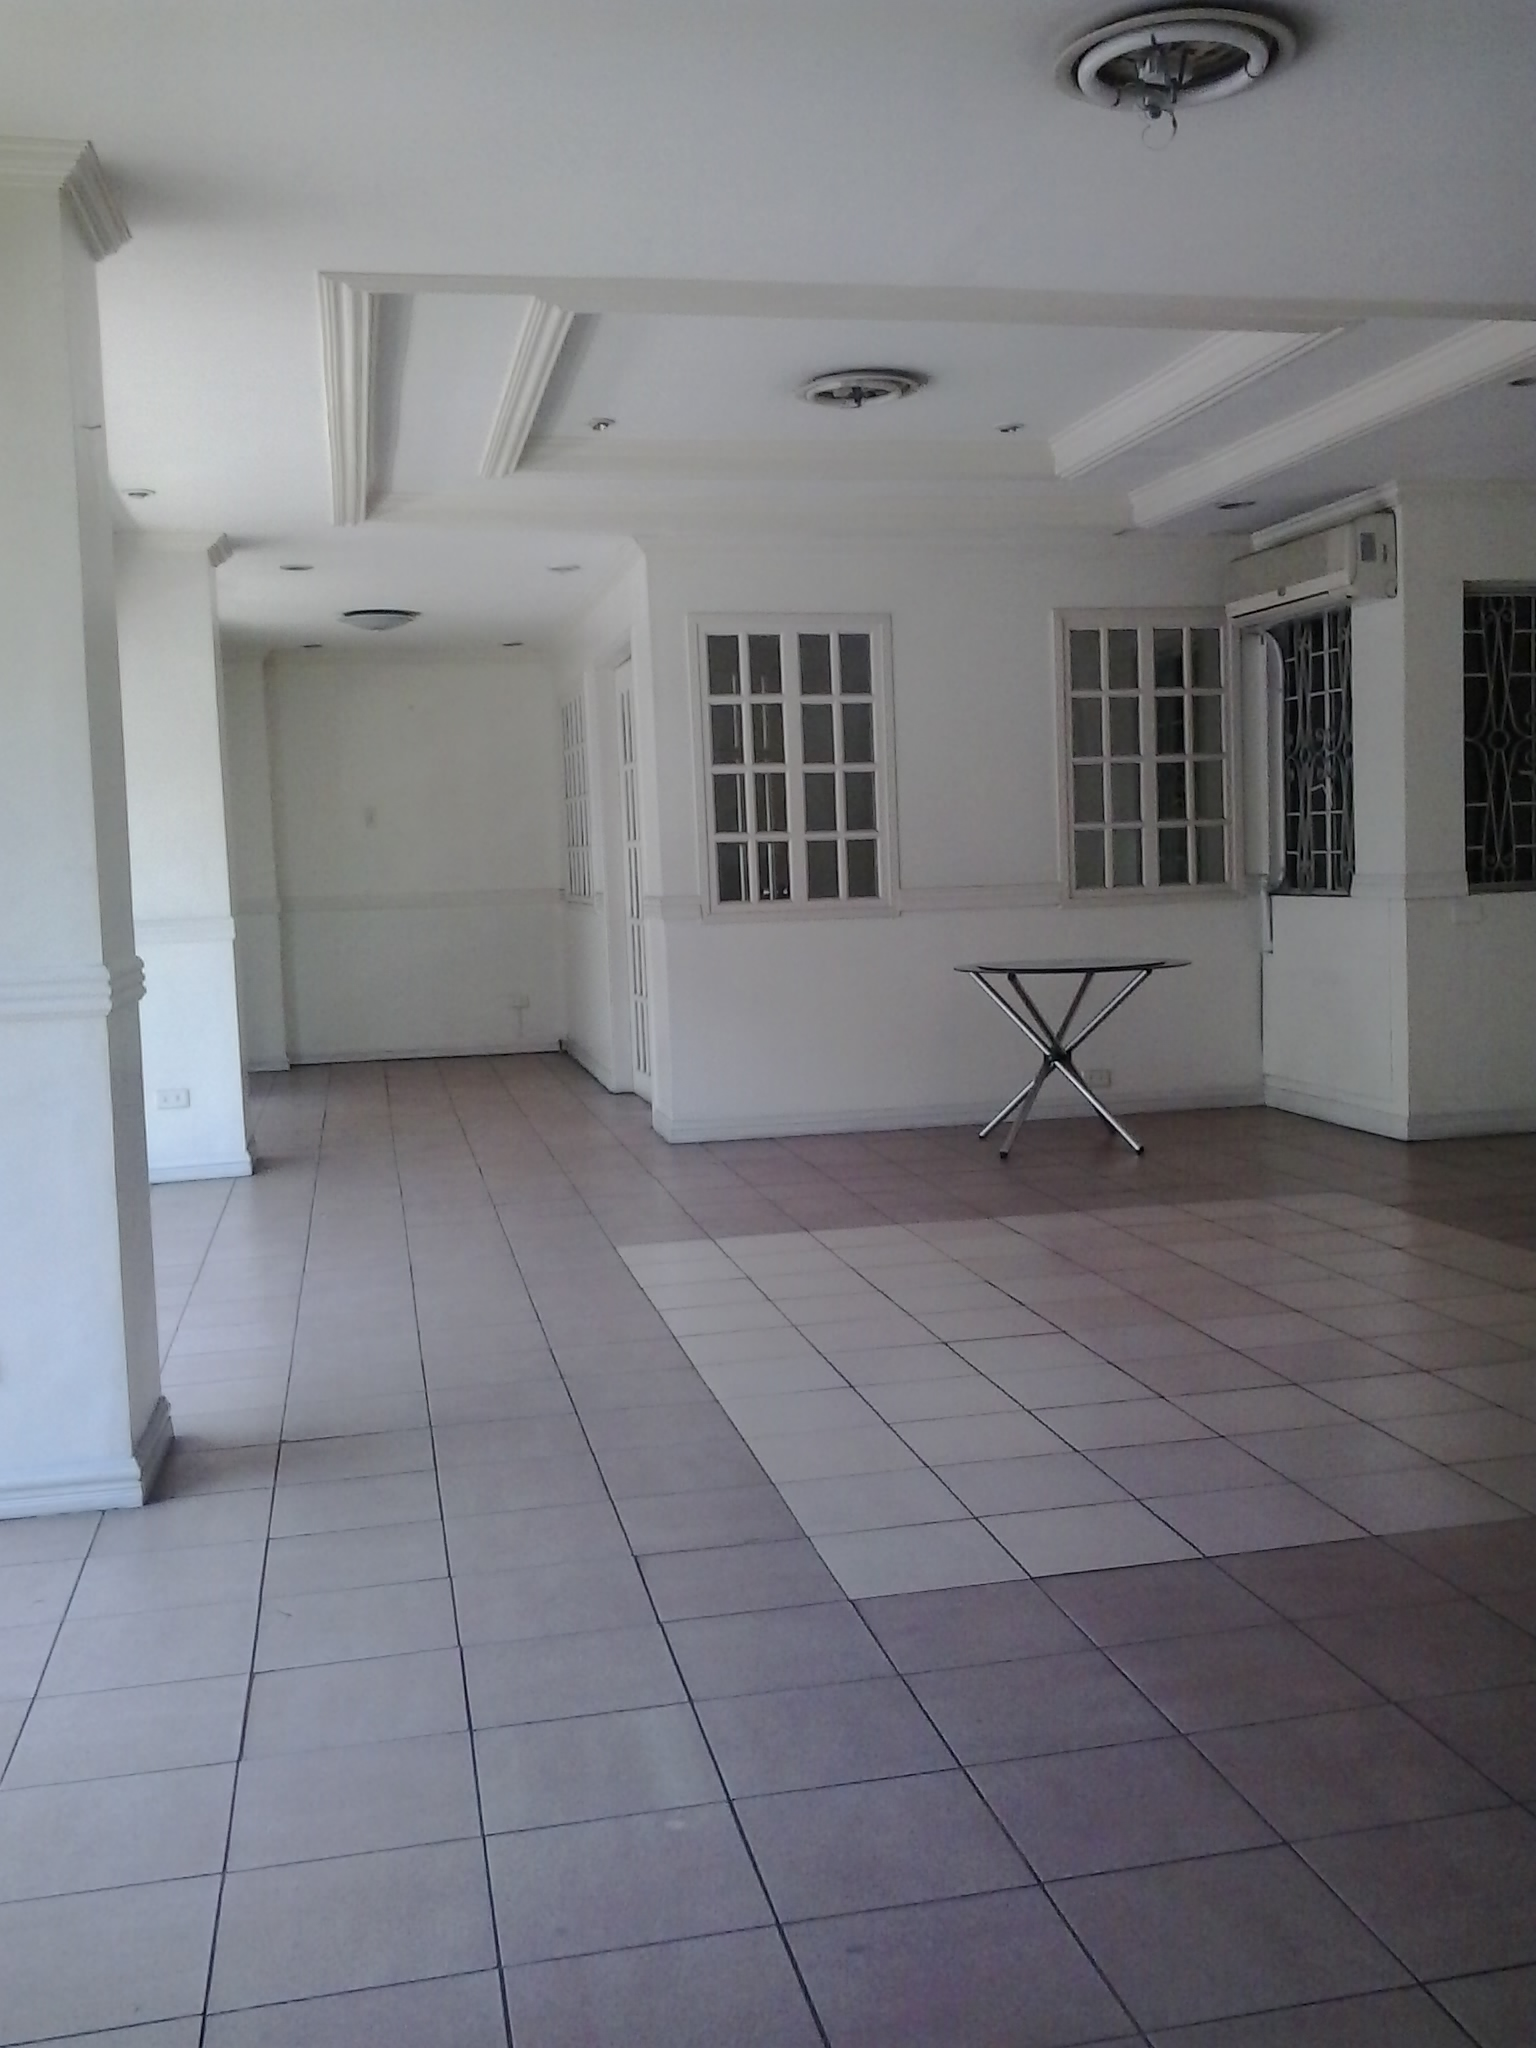 FOR SALE: Office / Commercial / Industrial Manila Metropolitan Area > Quezon 2